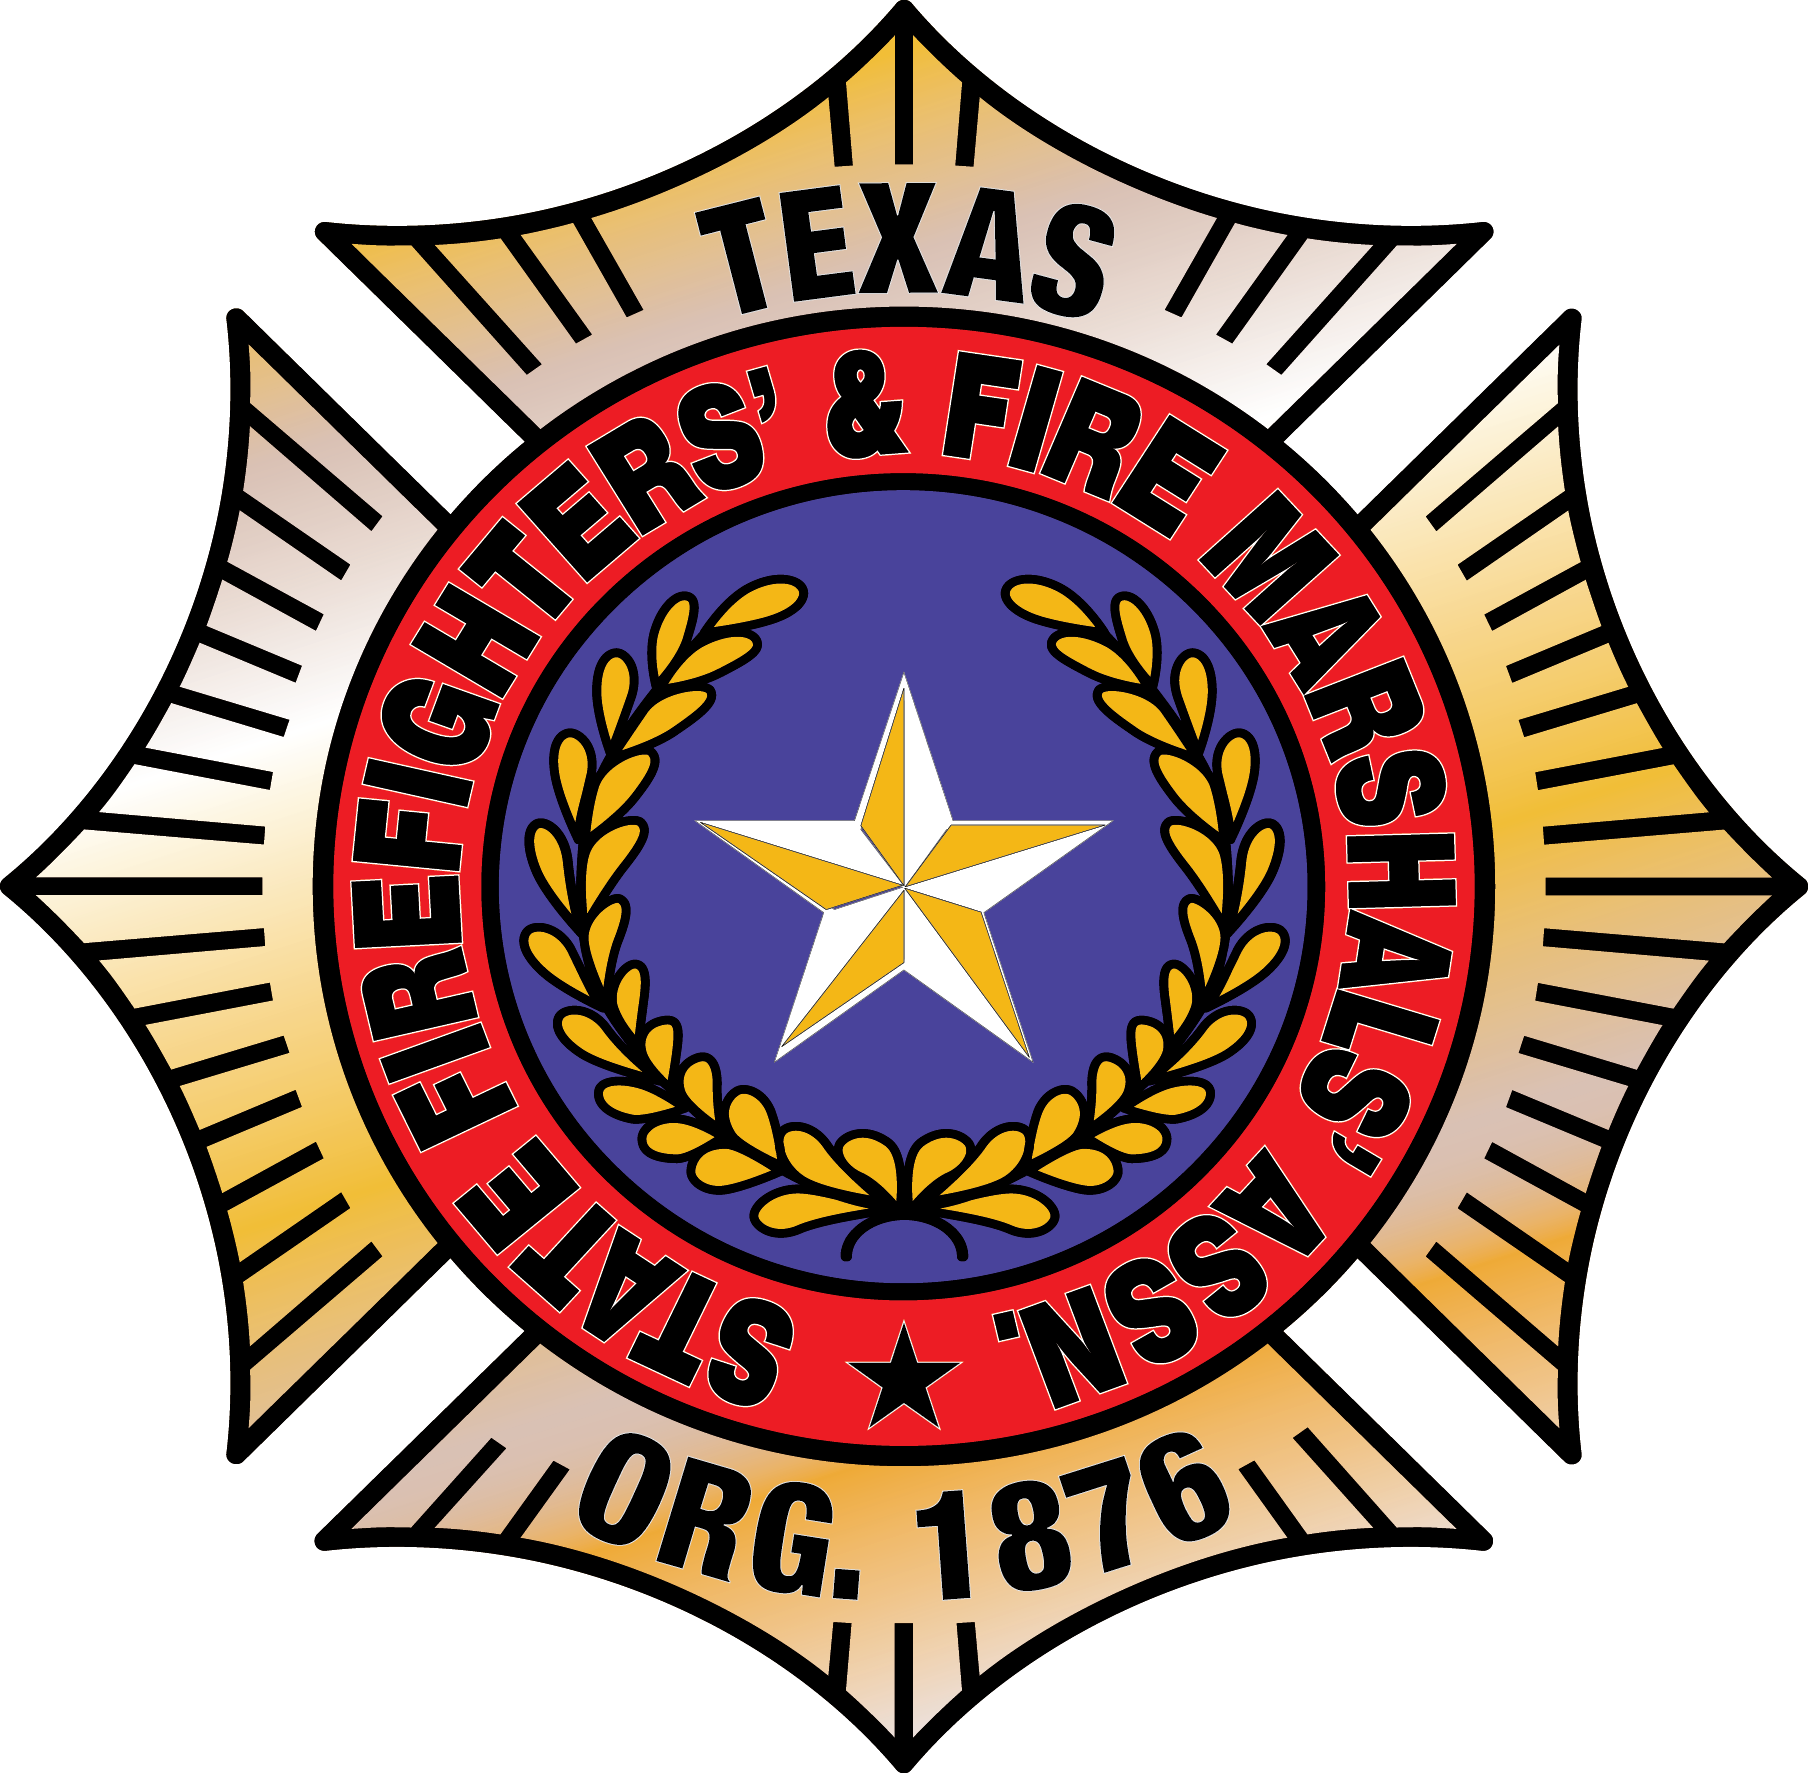 Texas State FireFighters & Fire Marshal's Association